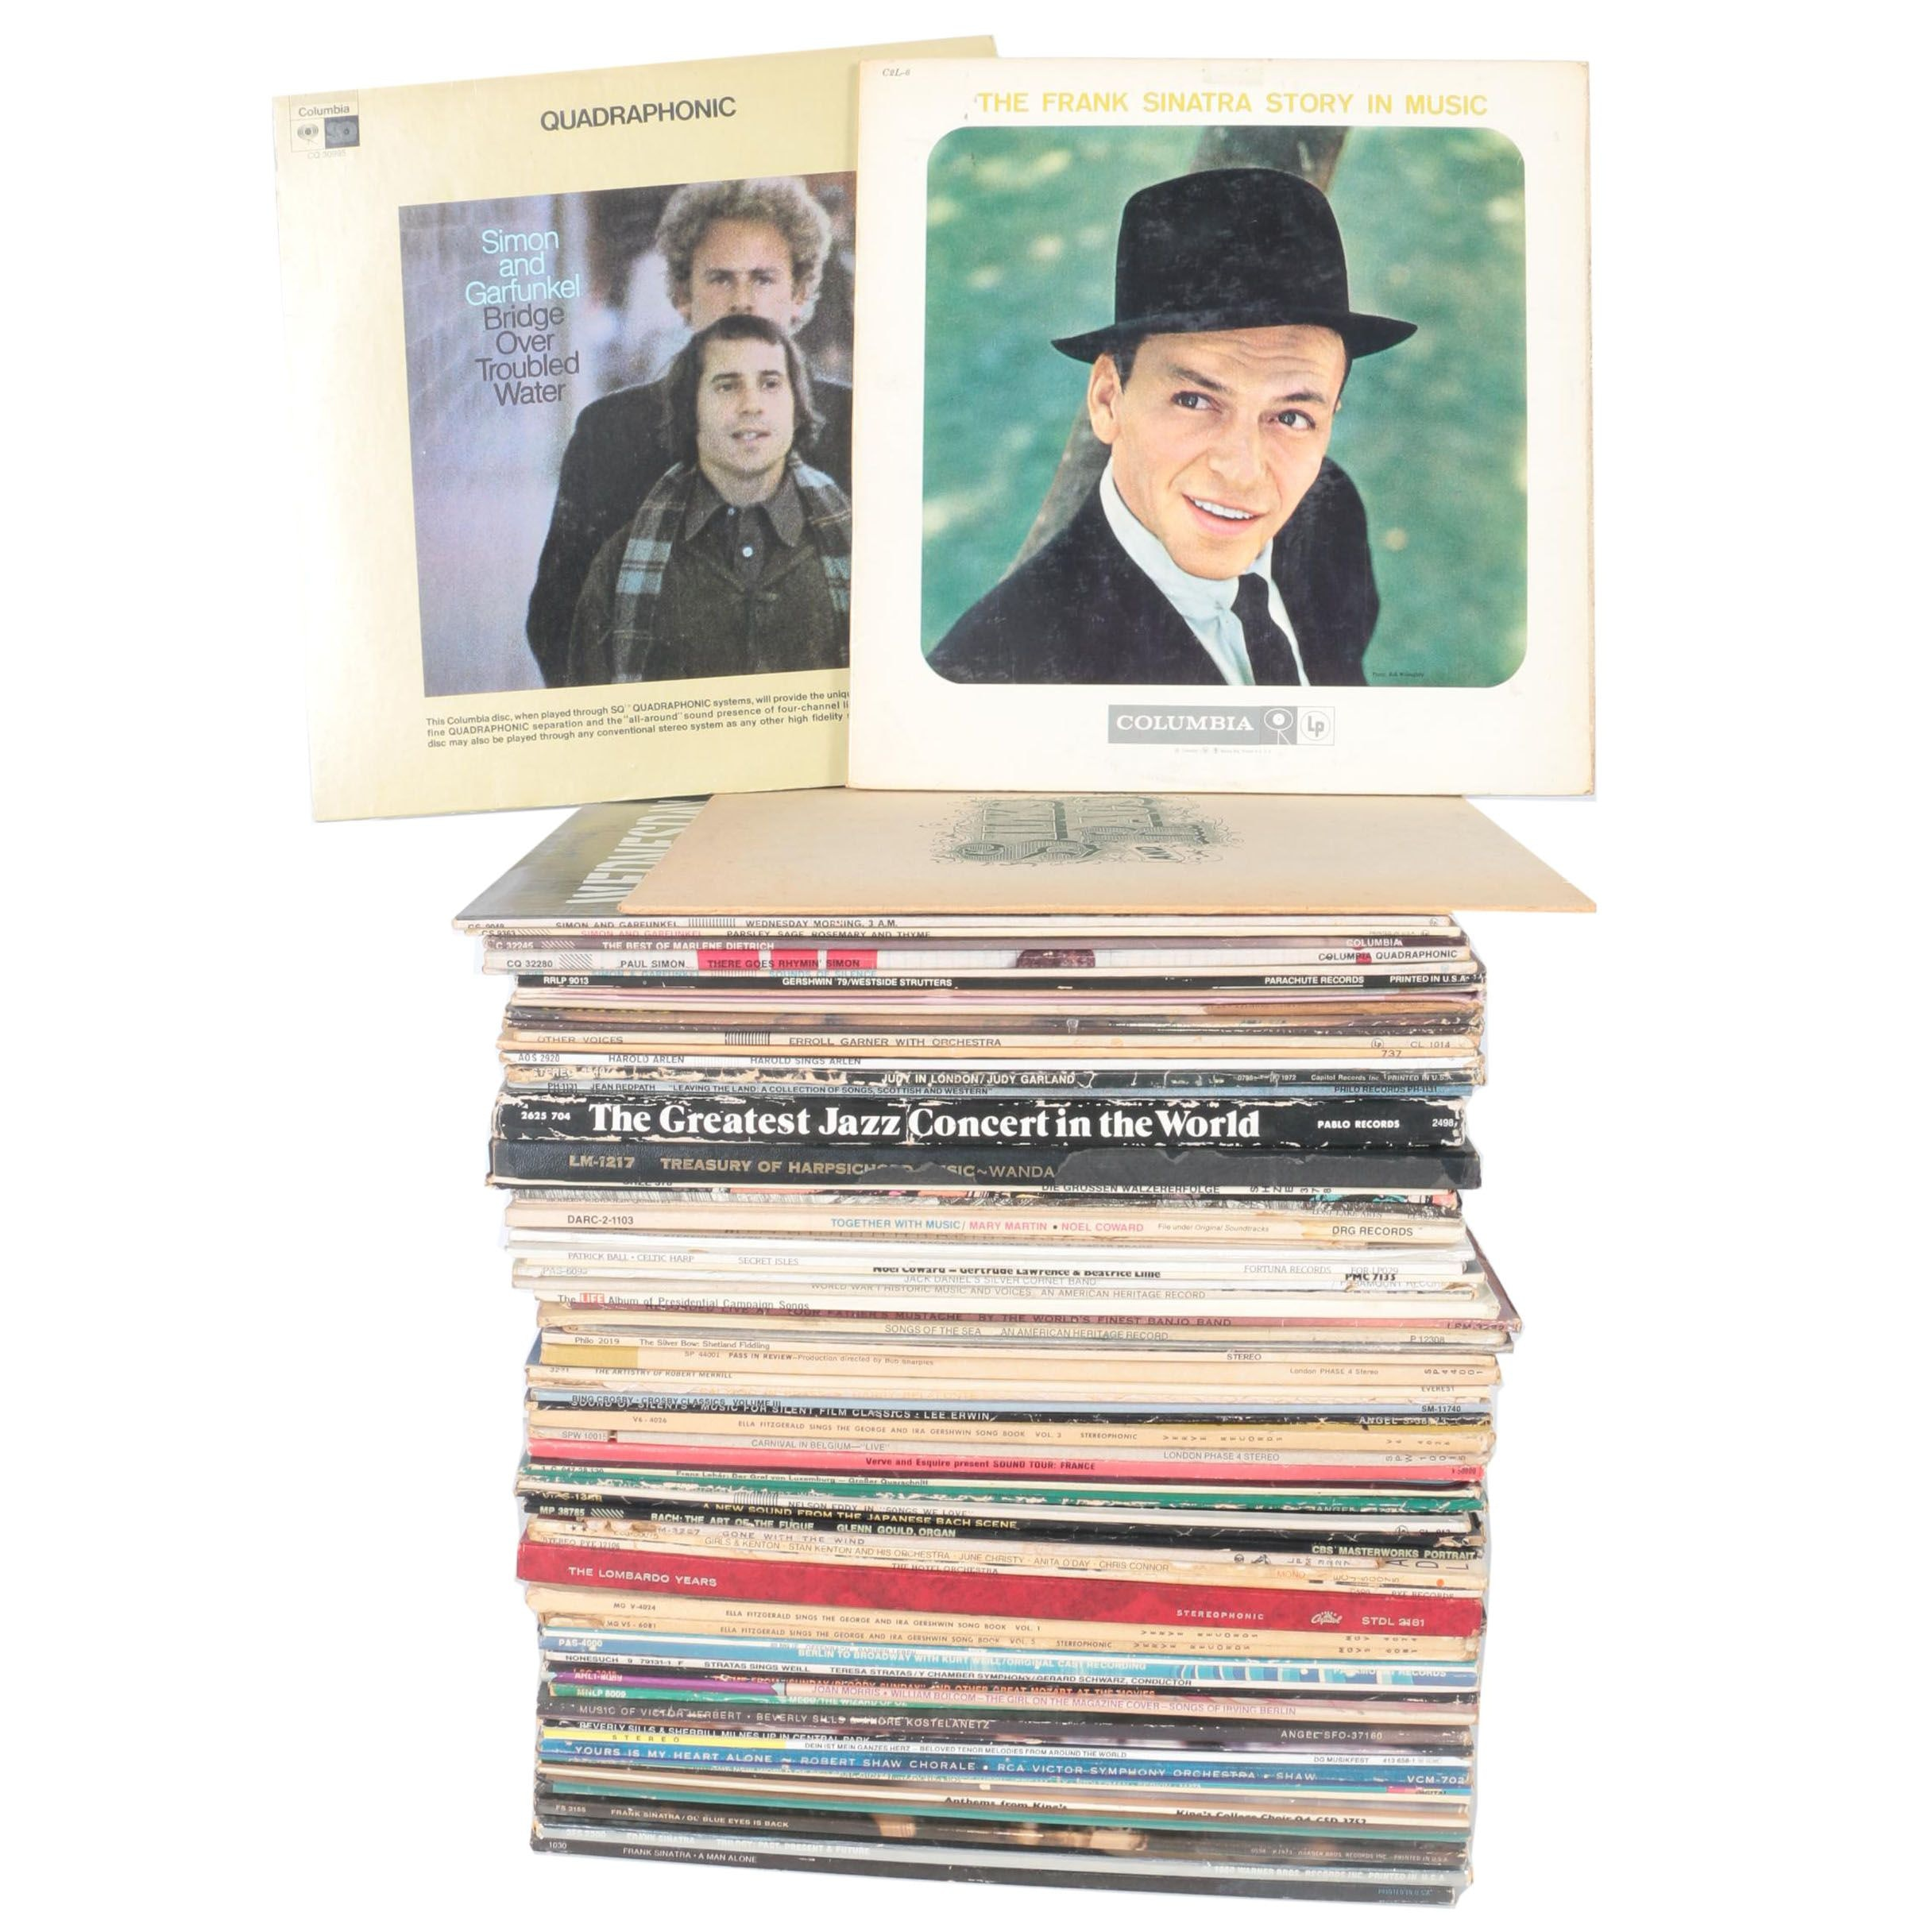 Sinatra, Bach, Simon and Garfunkel, Errol Garner and Other Vintage LPs